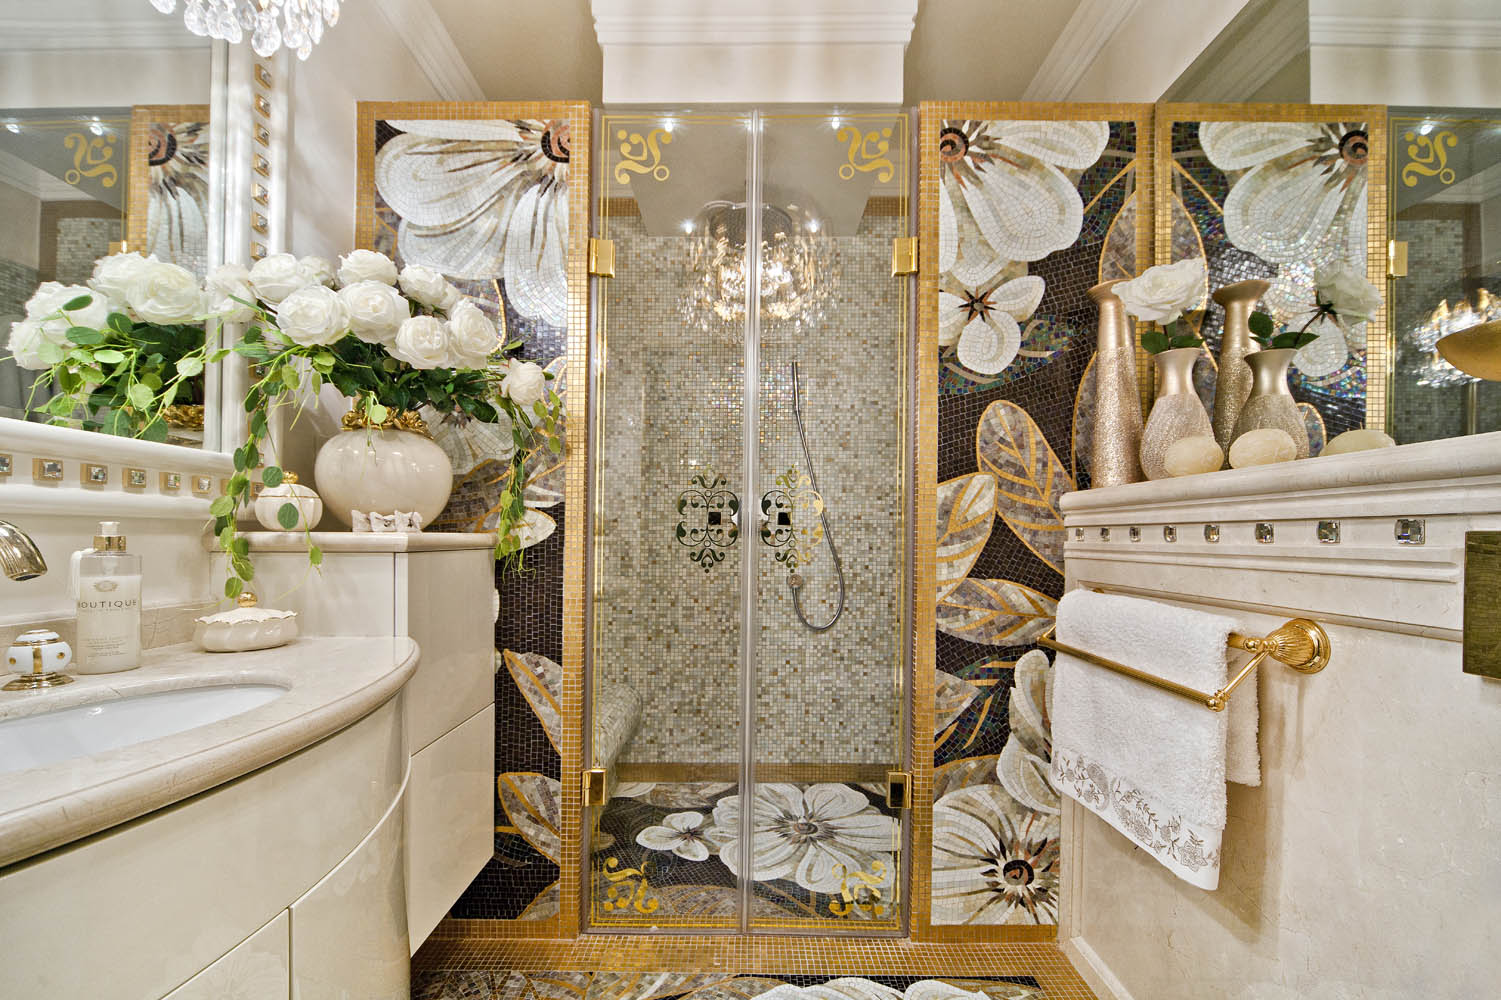 Elegant bathrooms in white and gold